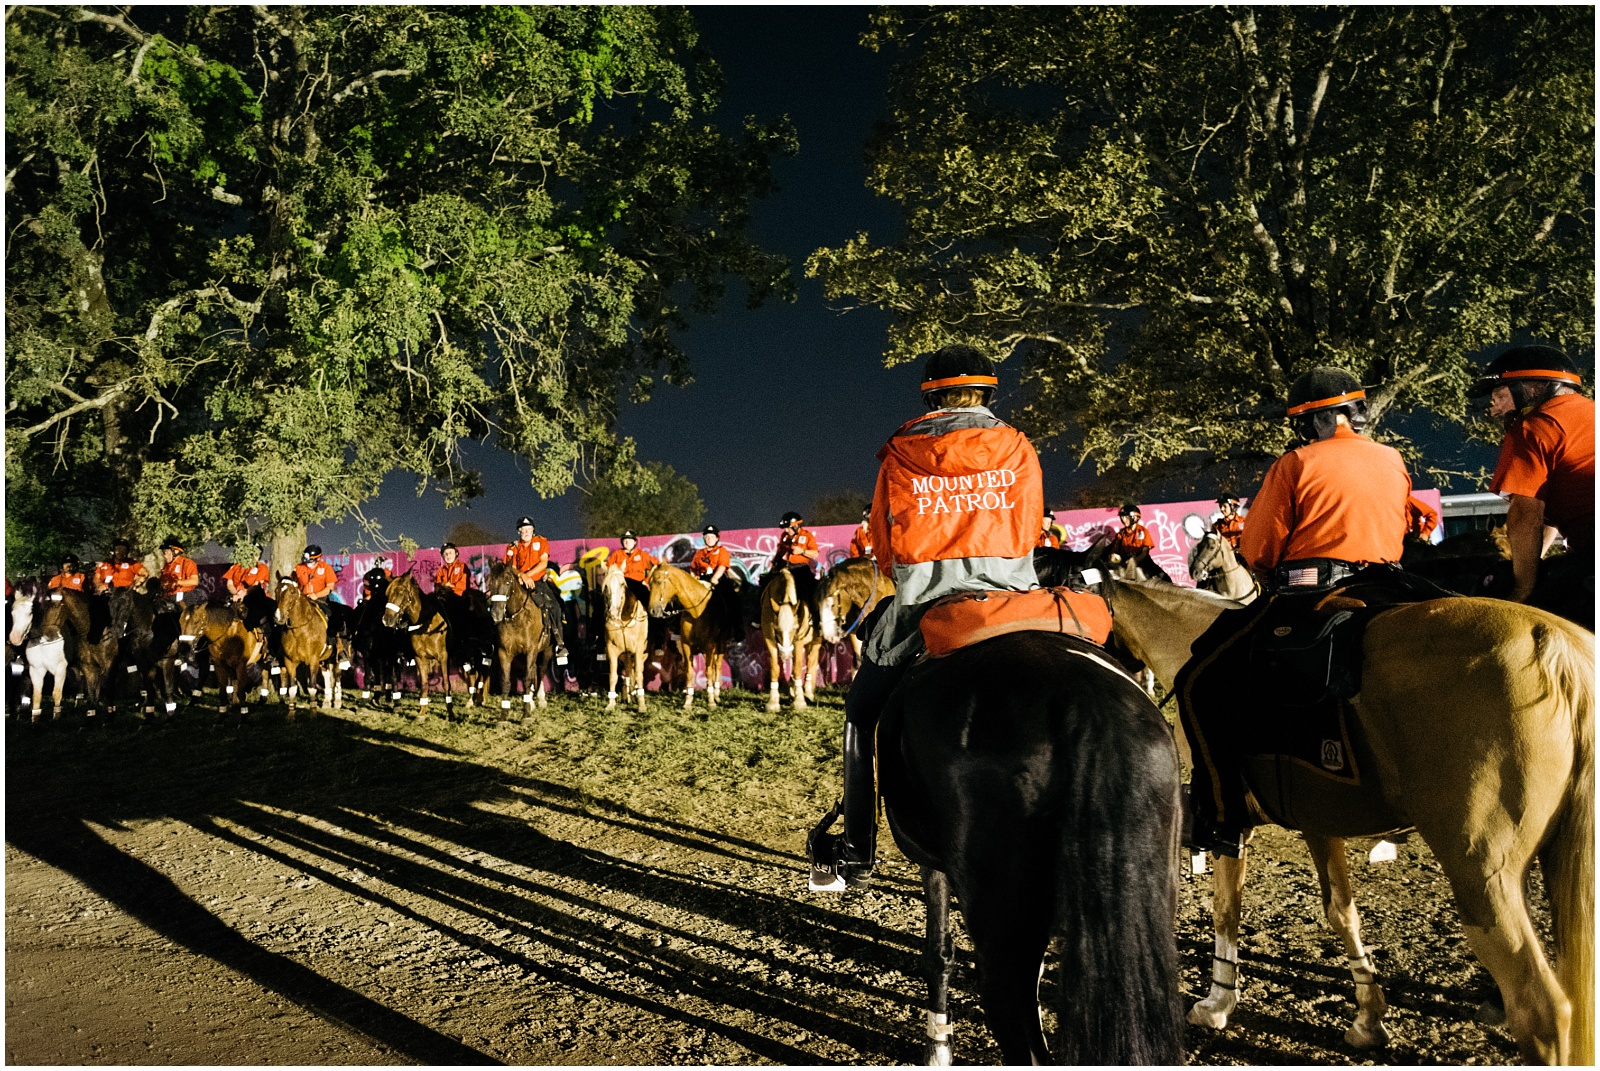 Mounted police at night